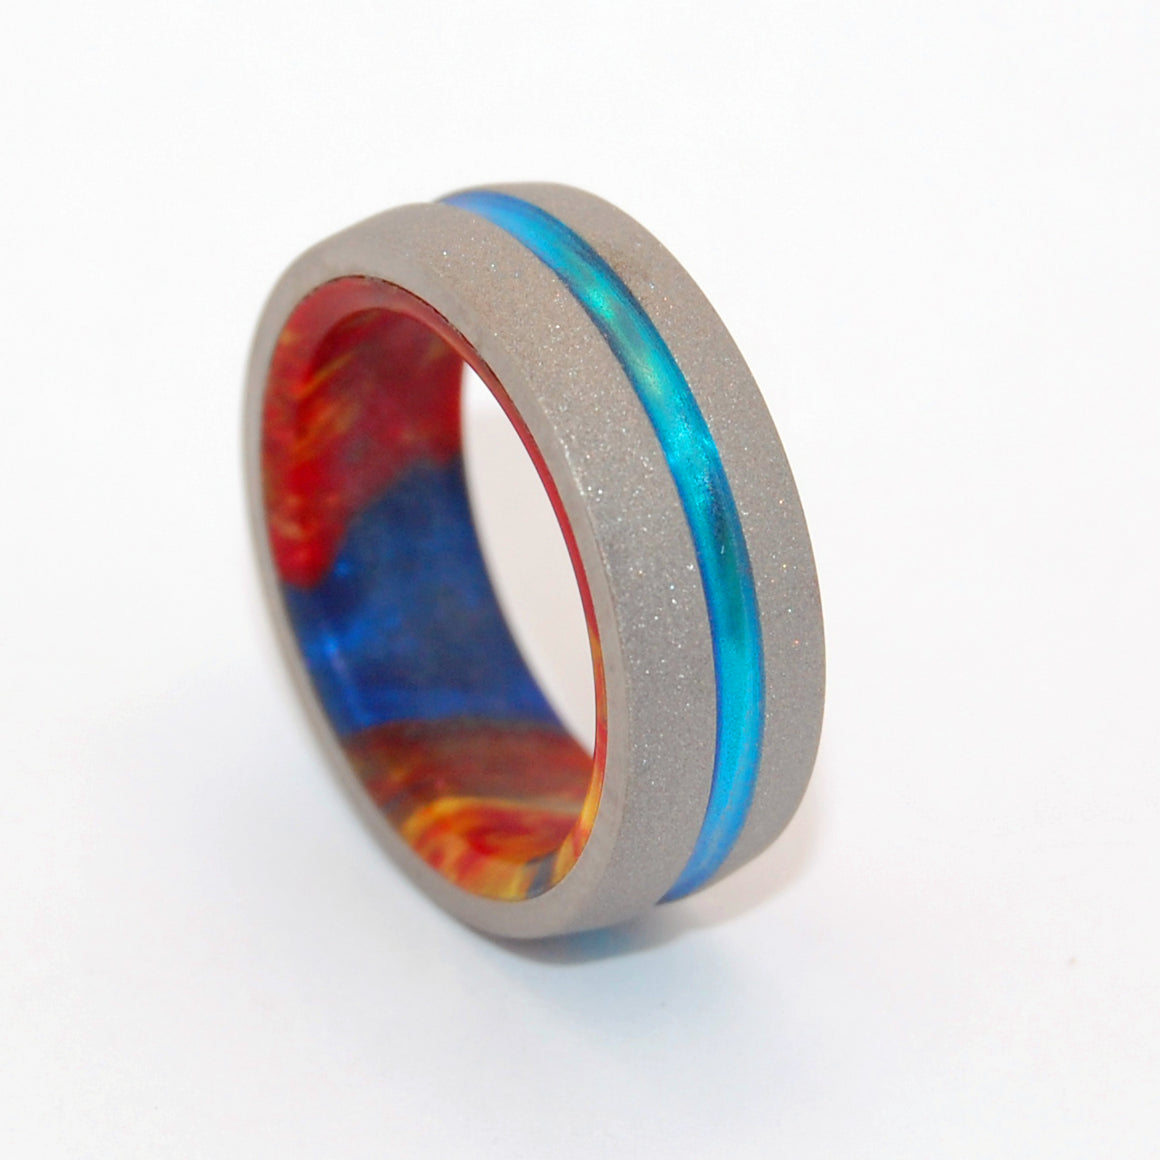 Lava Burst Explosion | Hand Crafted and Hand Anodized Titanium Wedding Ring